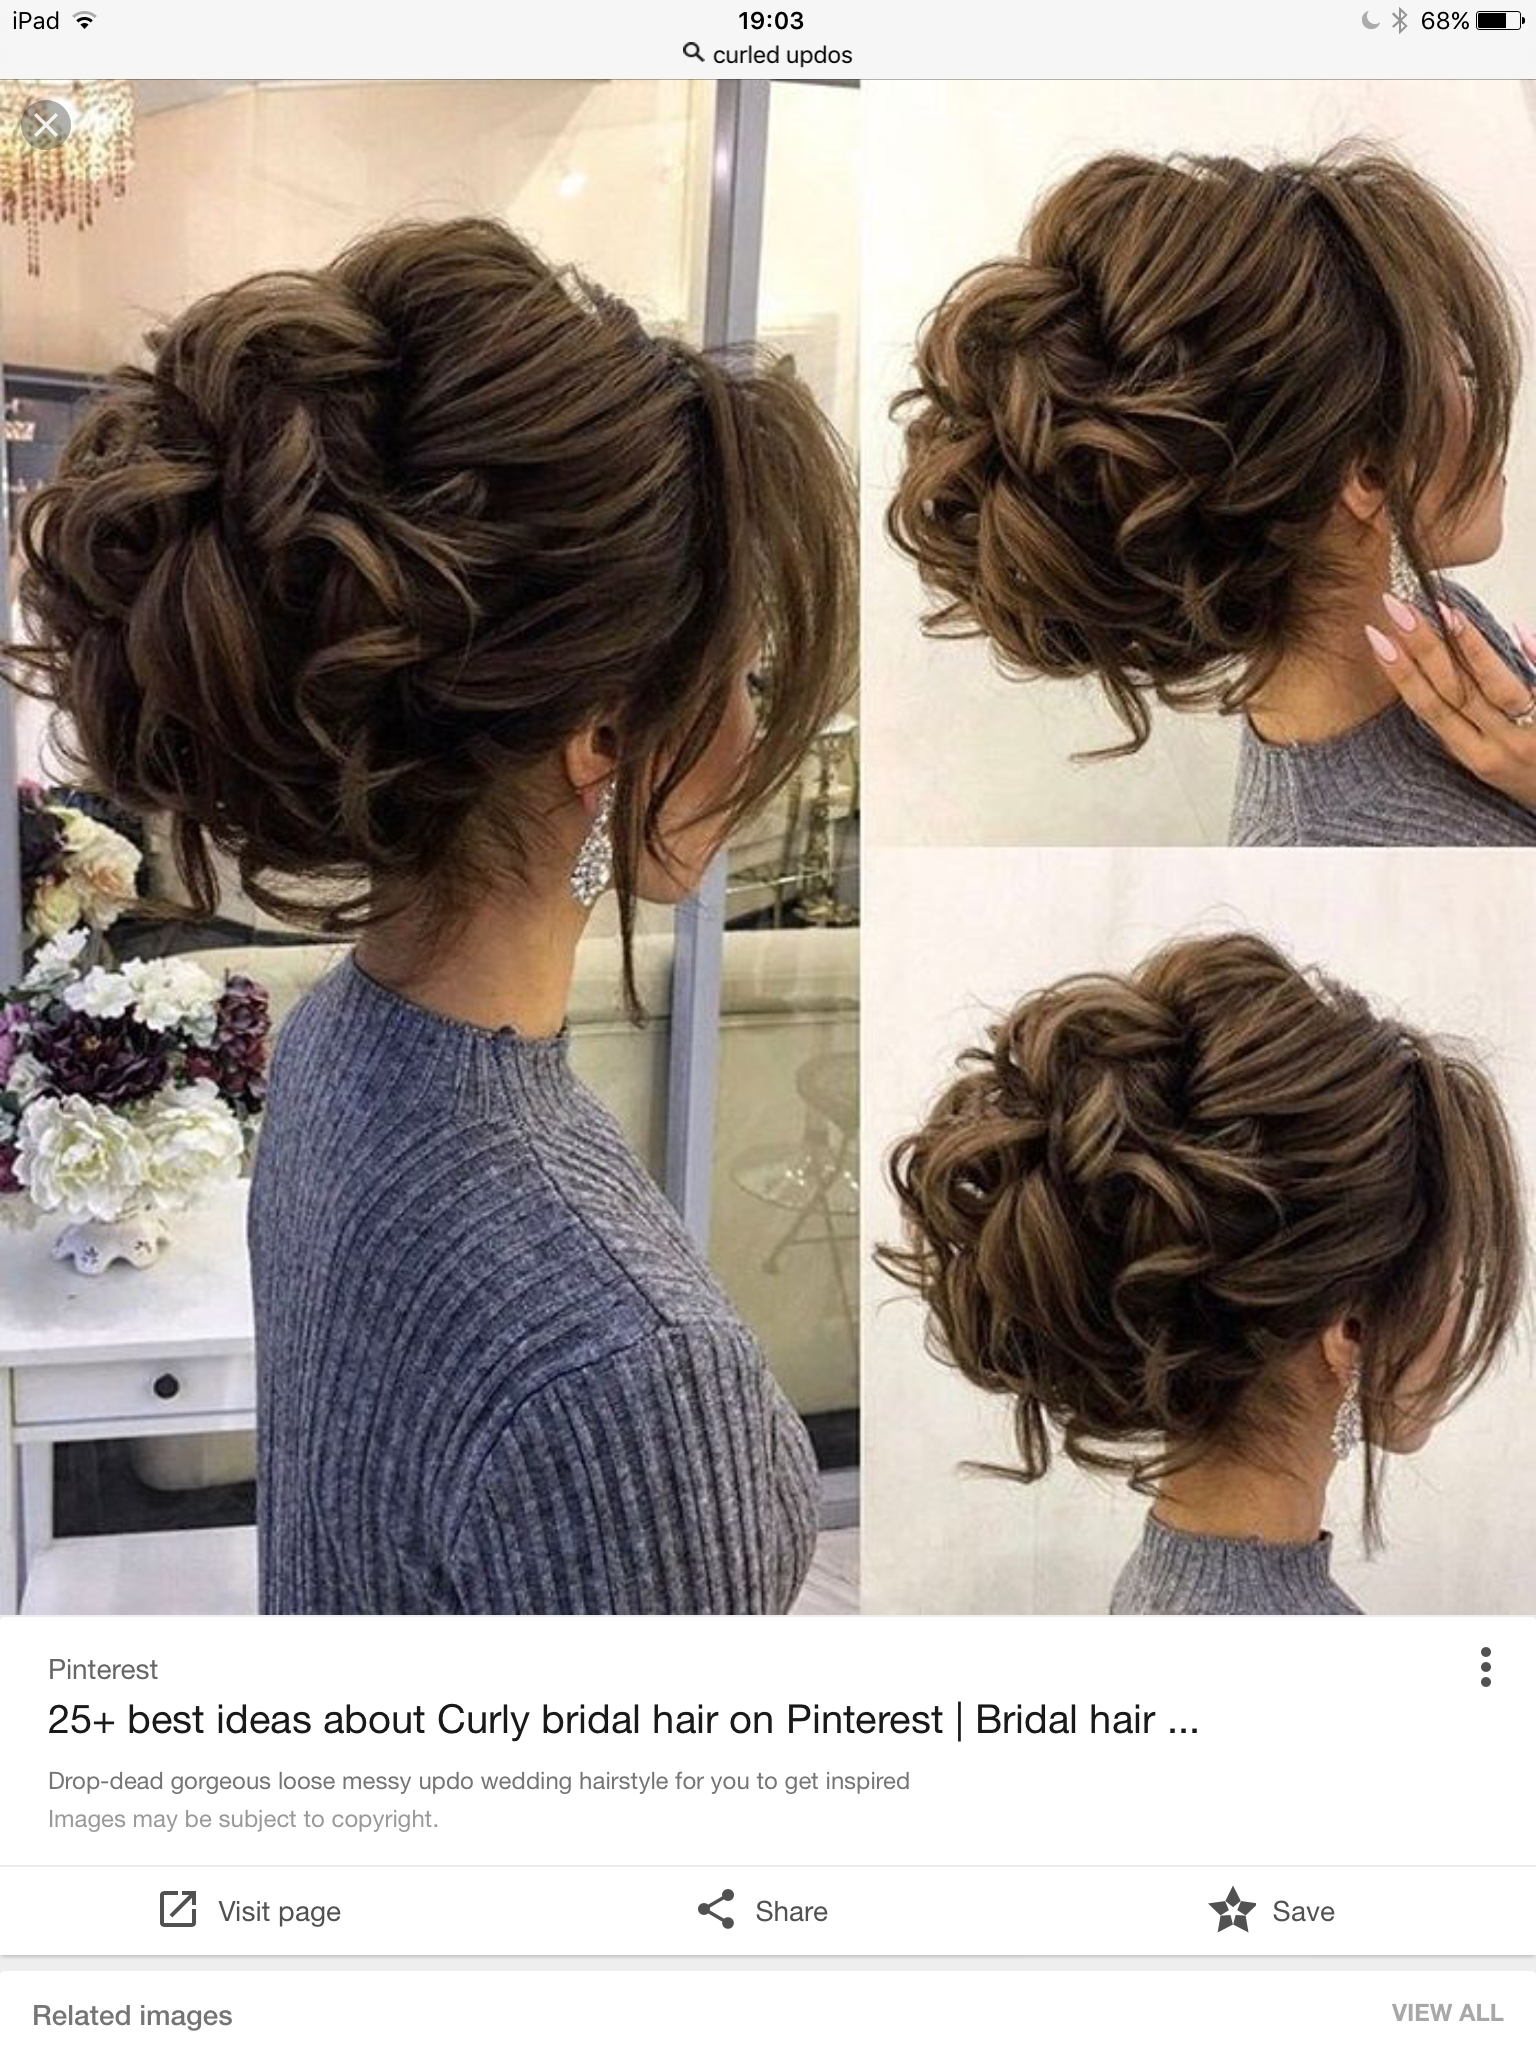 Pin by taylor warner on bridal shower in wedding hairstyles